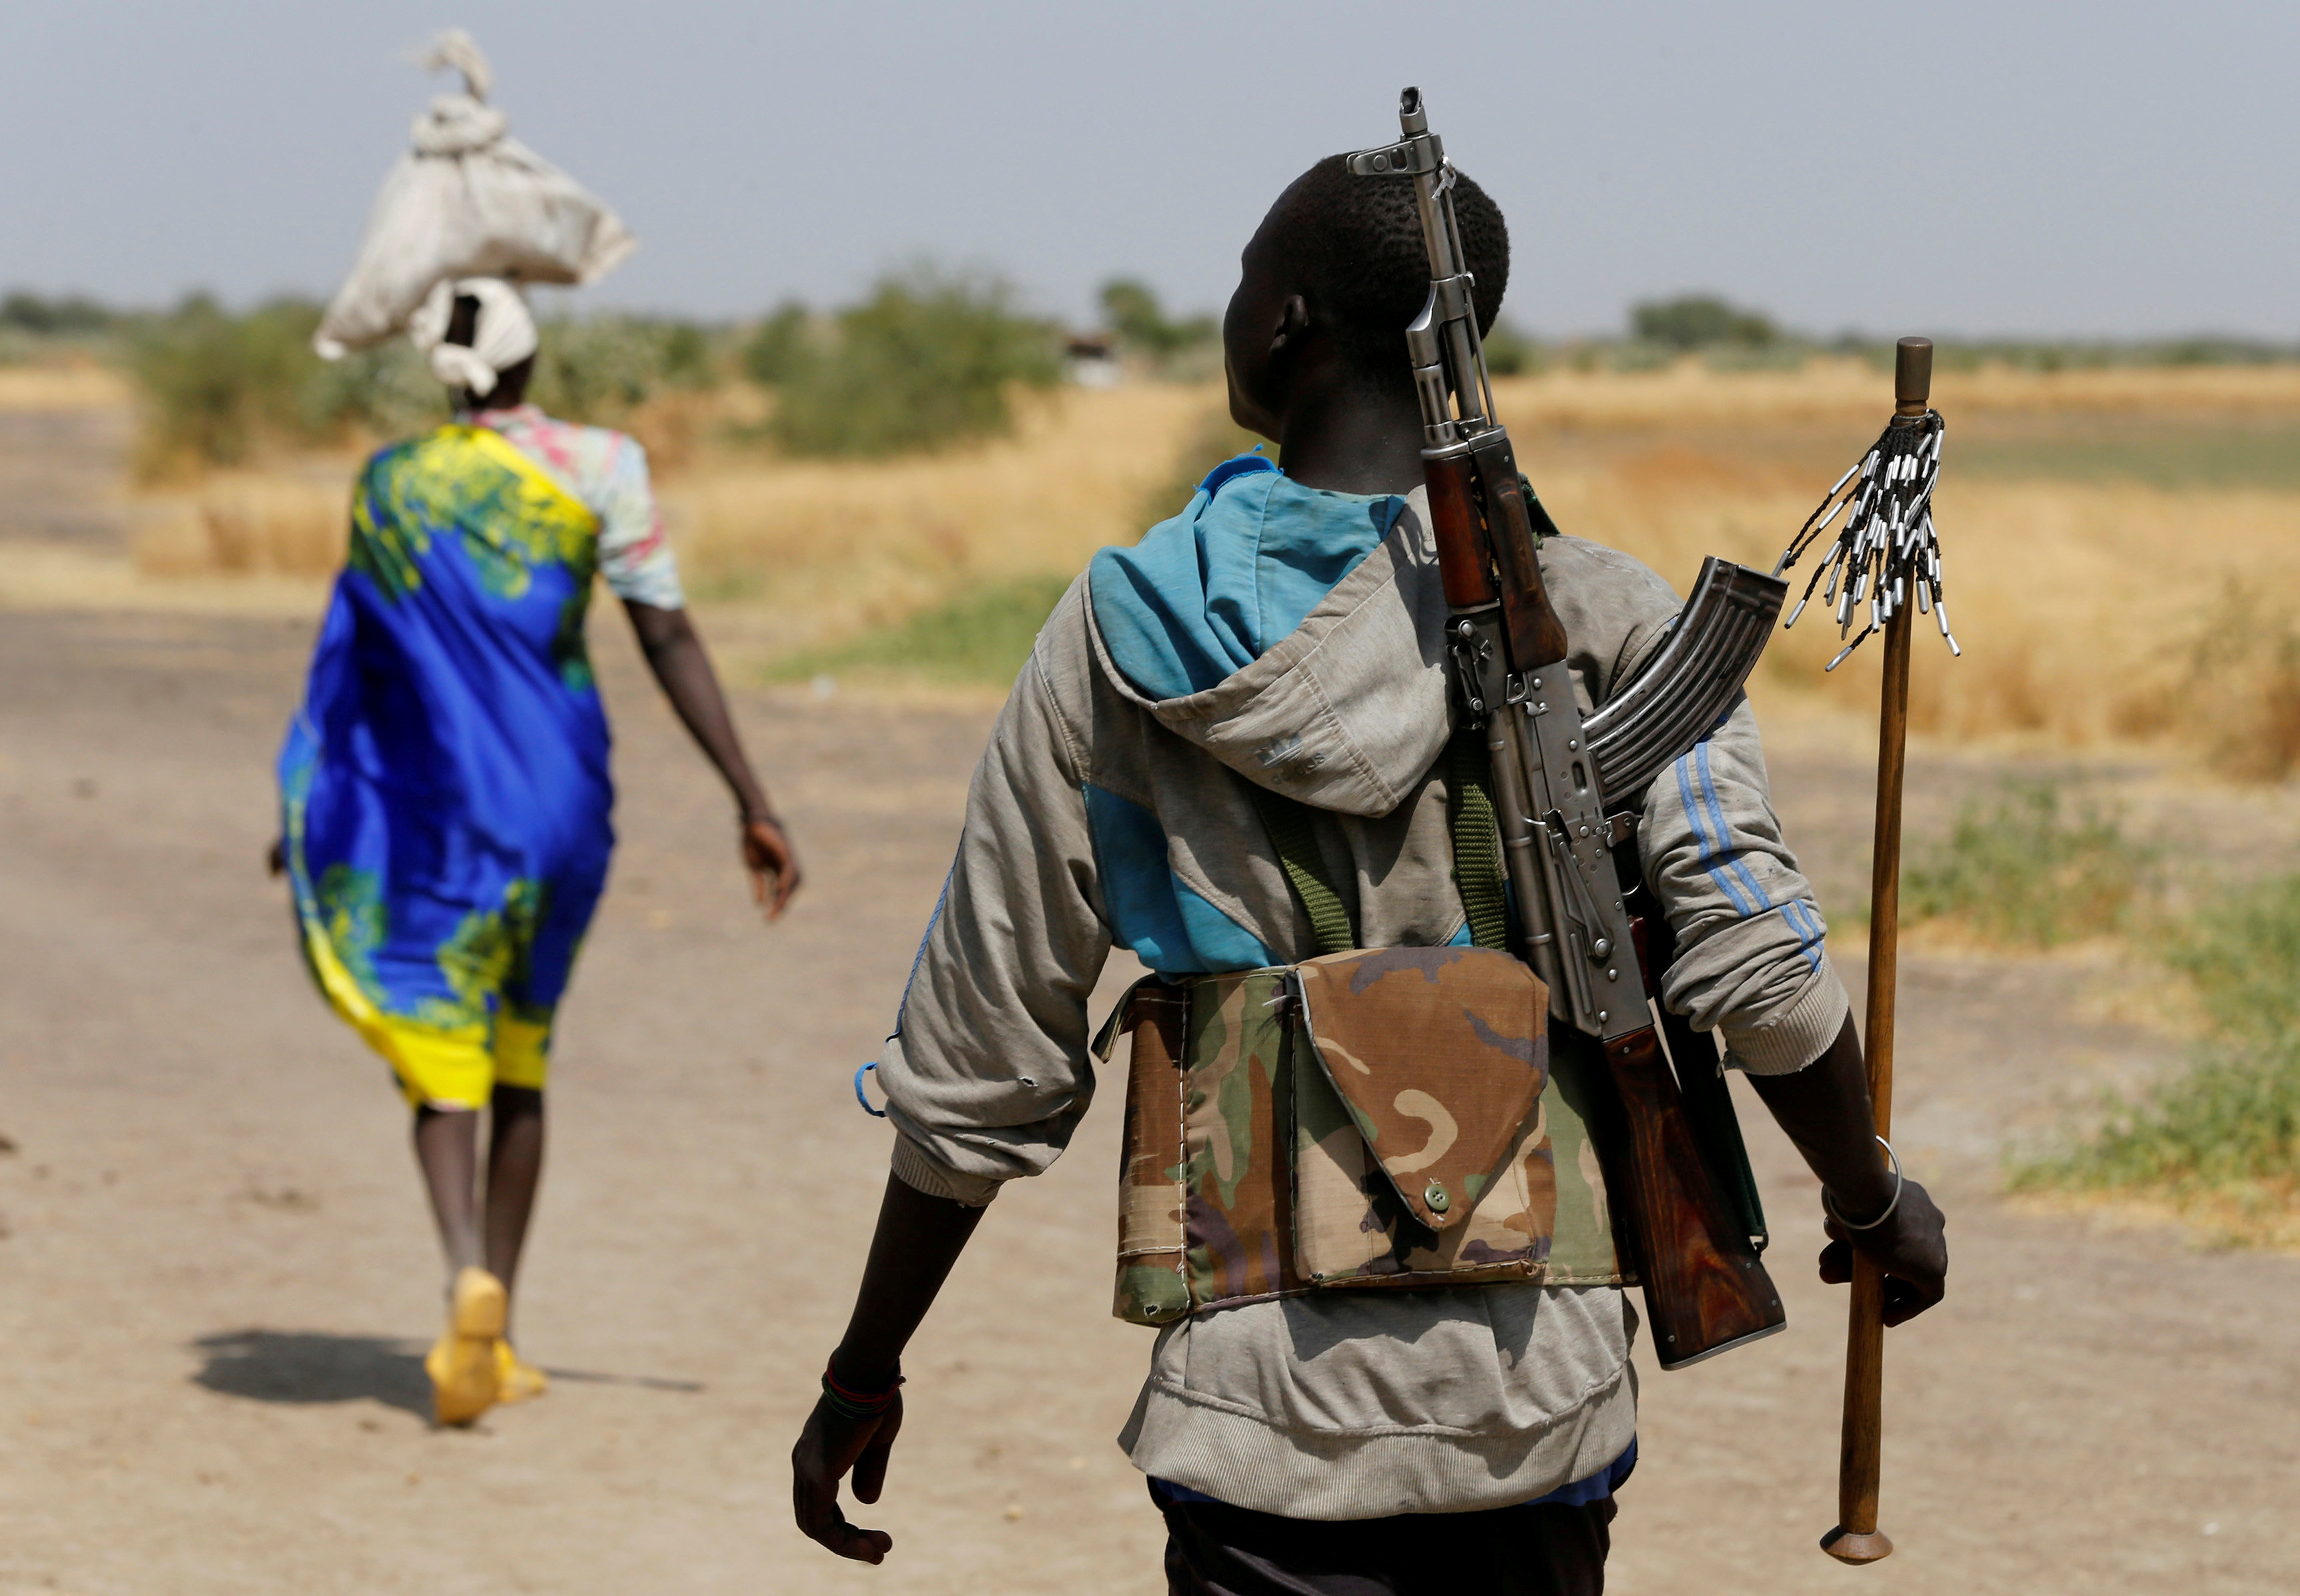 FILE PHOTO: An armed man walks on a path close to the village of Nialdhiu, South Sudan February 7, 2017. REUTERS/Siegfried Modola/File Photo